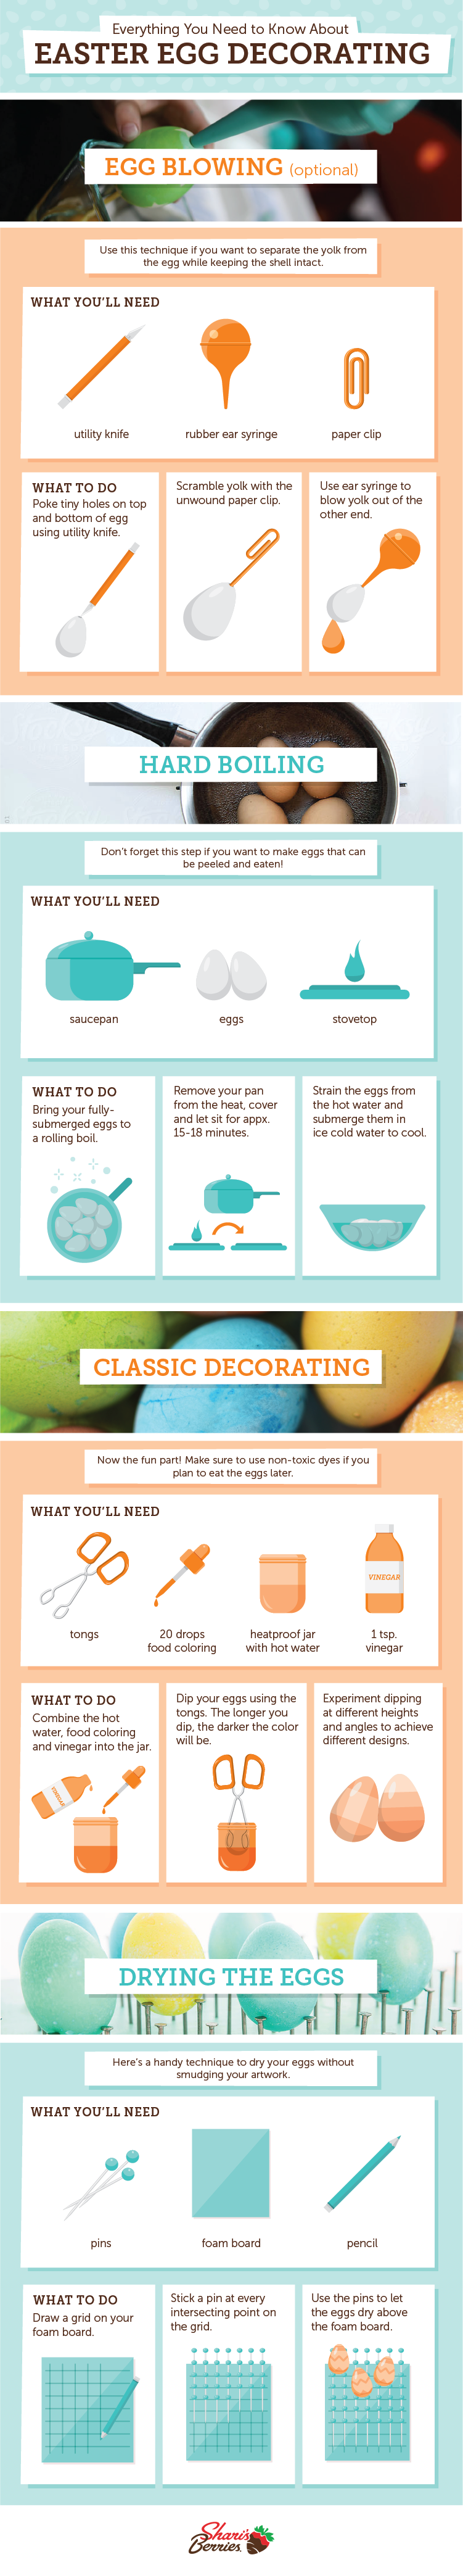 Easter Egg Decorating Guide